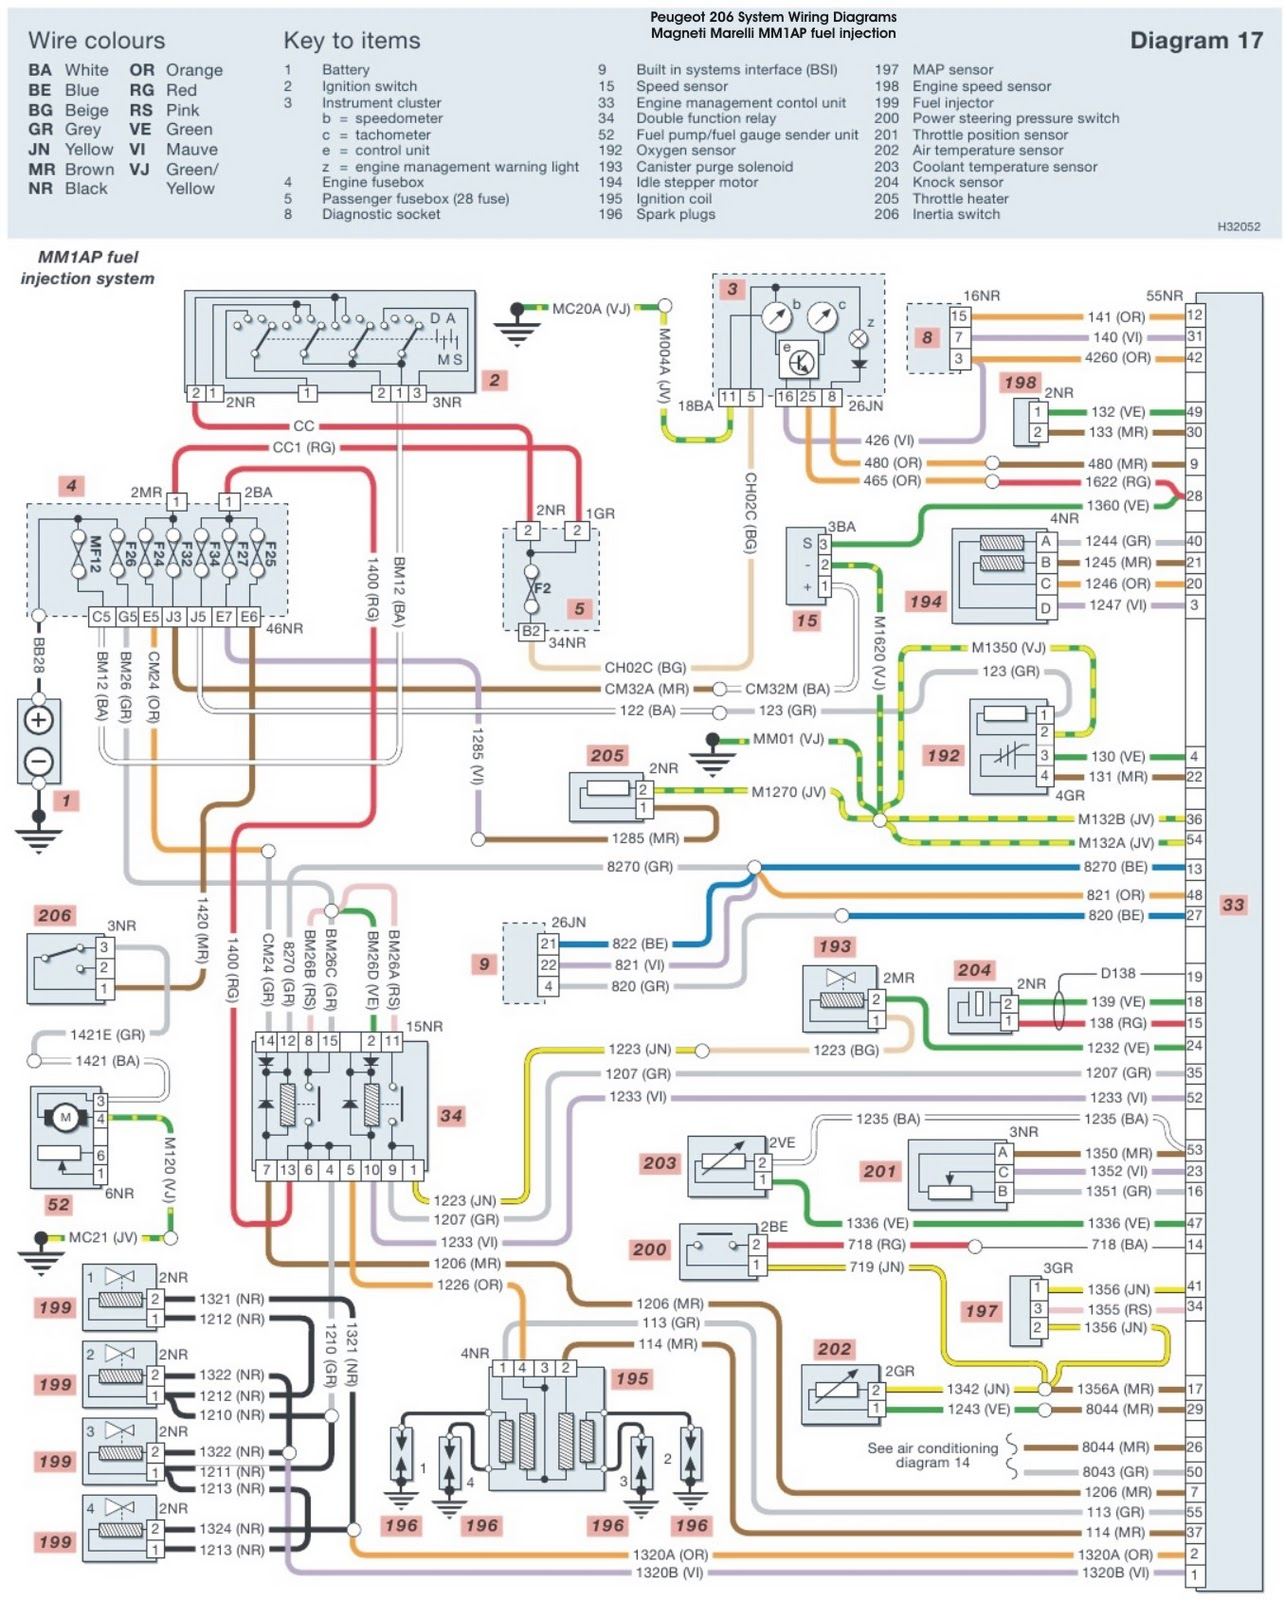 peugeot 406 electric window wiring electric heat wire, Wiring diagram